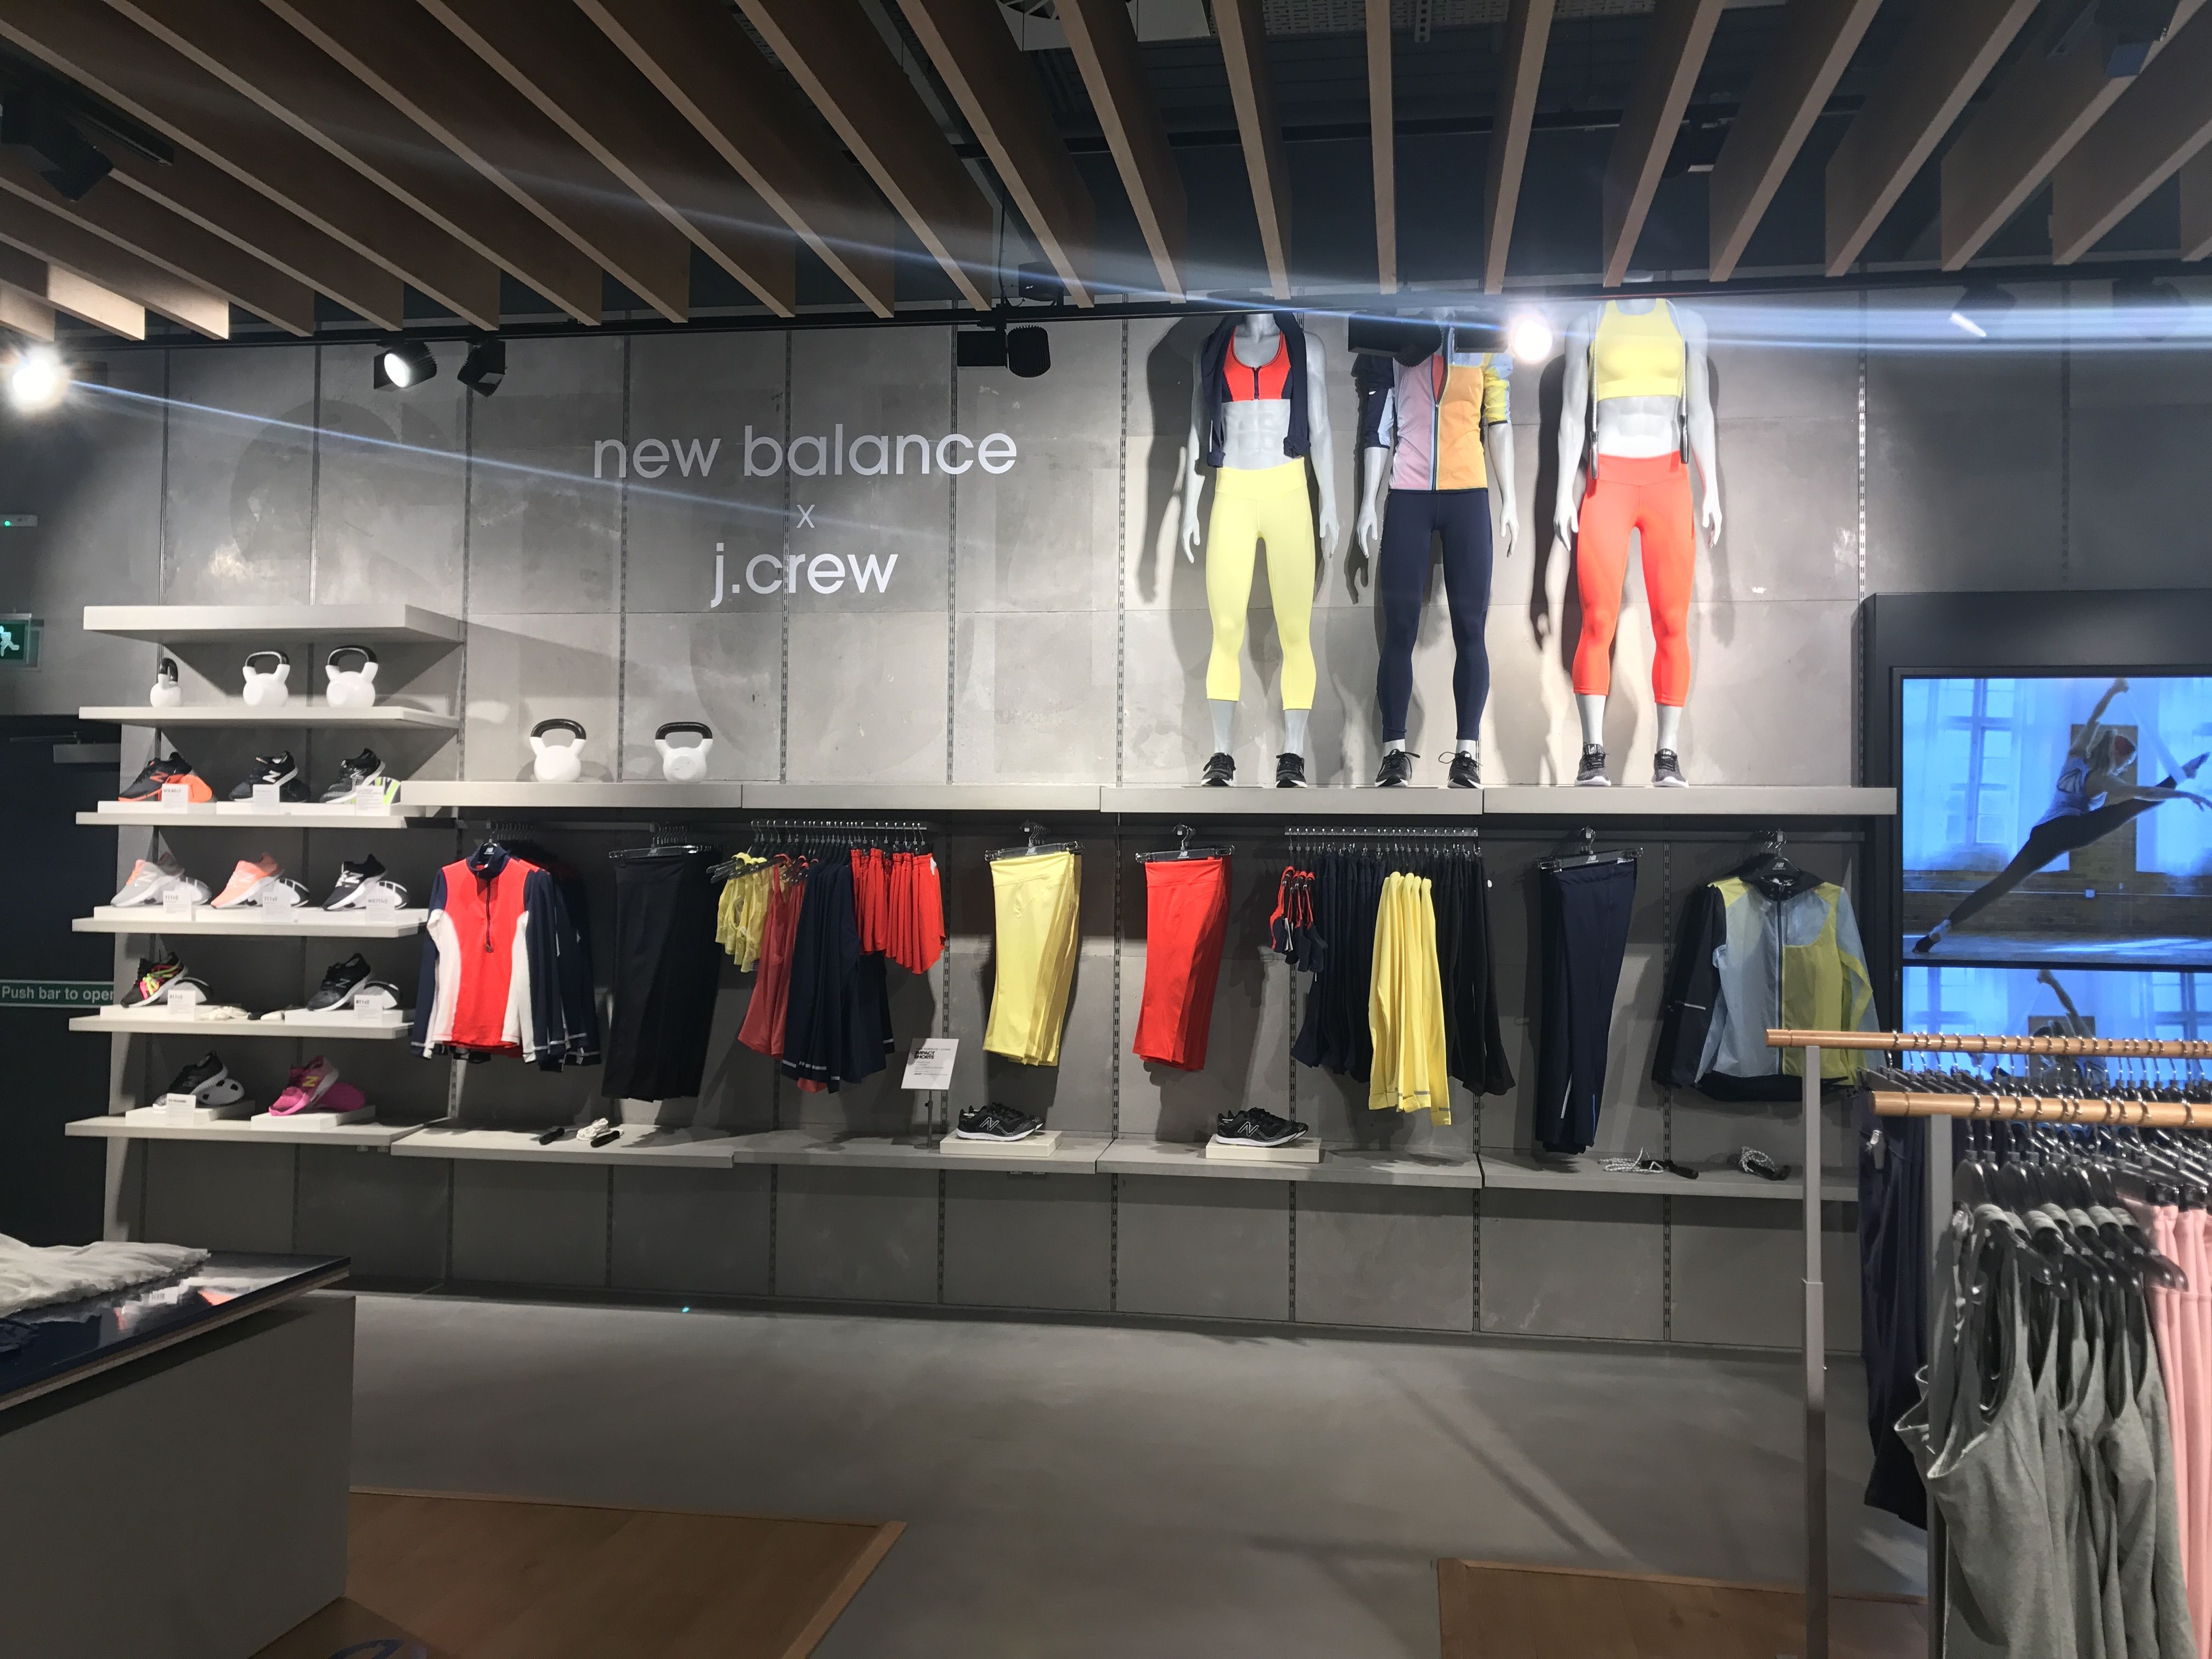 80df101cda New Balance - Central London, April 2017 Collaboration with J Crew  #sportbrands #retail #vm #visualmerchandising #jcrew #newbalance #fashion